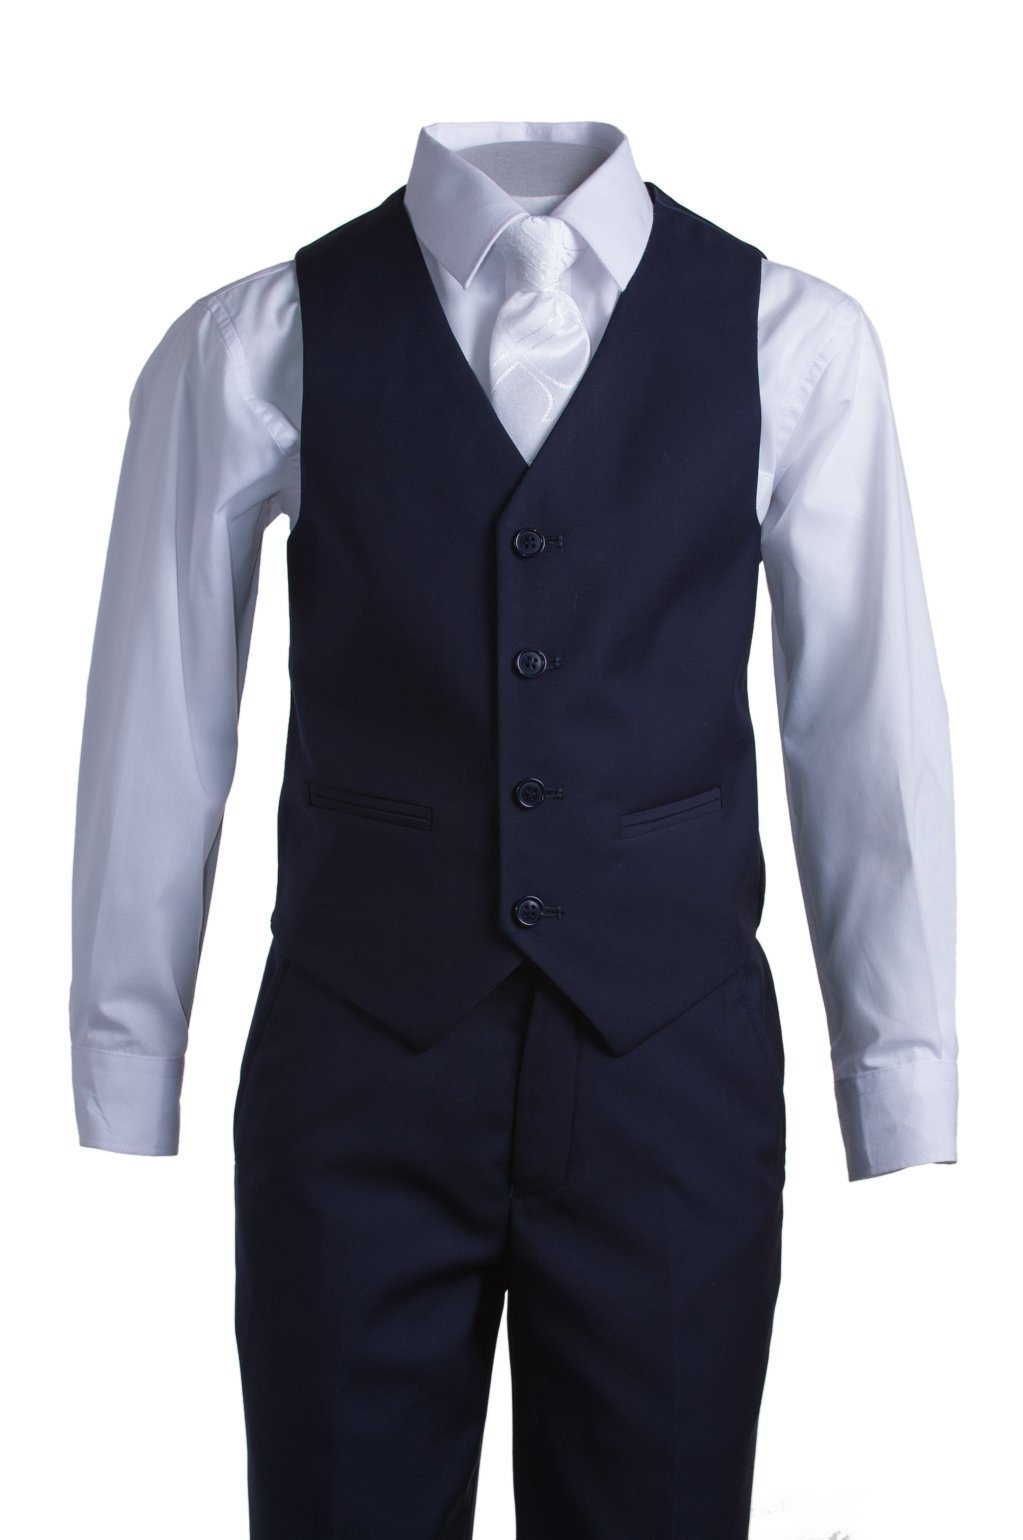 Boys Navy Blue Slim Fit Communion Suit with Vest & White Clergy Tie (10 Boys) by Tuxgear (Image #3)